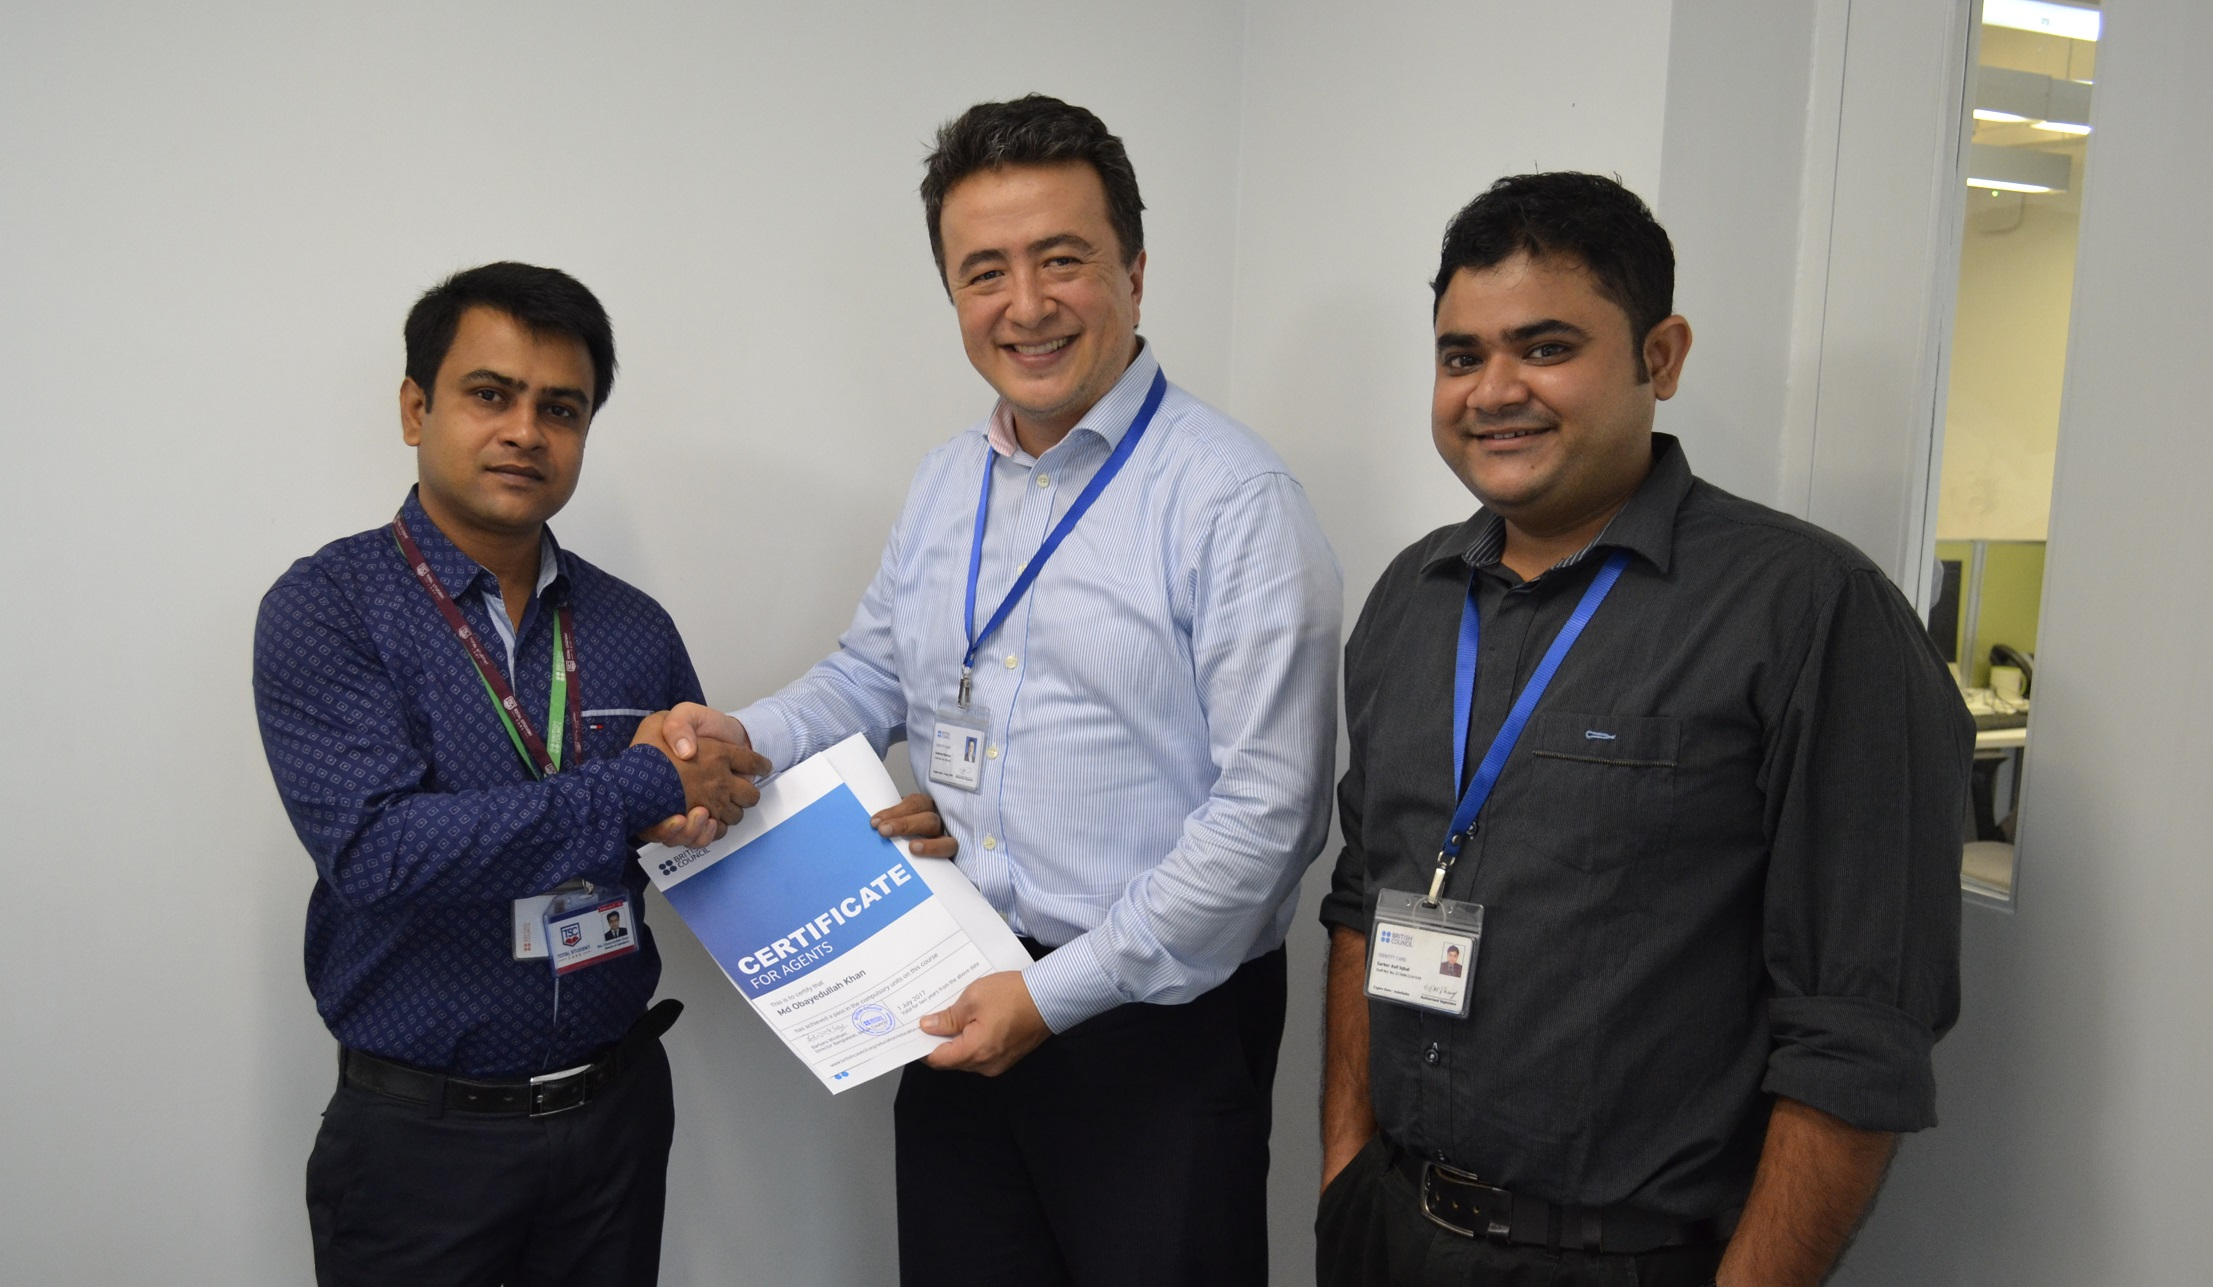 Total Student Care - Bangladesh Office country director, Md Obayedullah Khan has achieved the British Council - Global Agent Training Certificate successfully